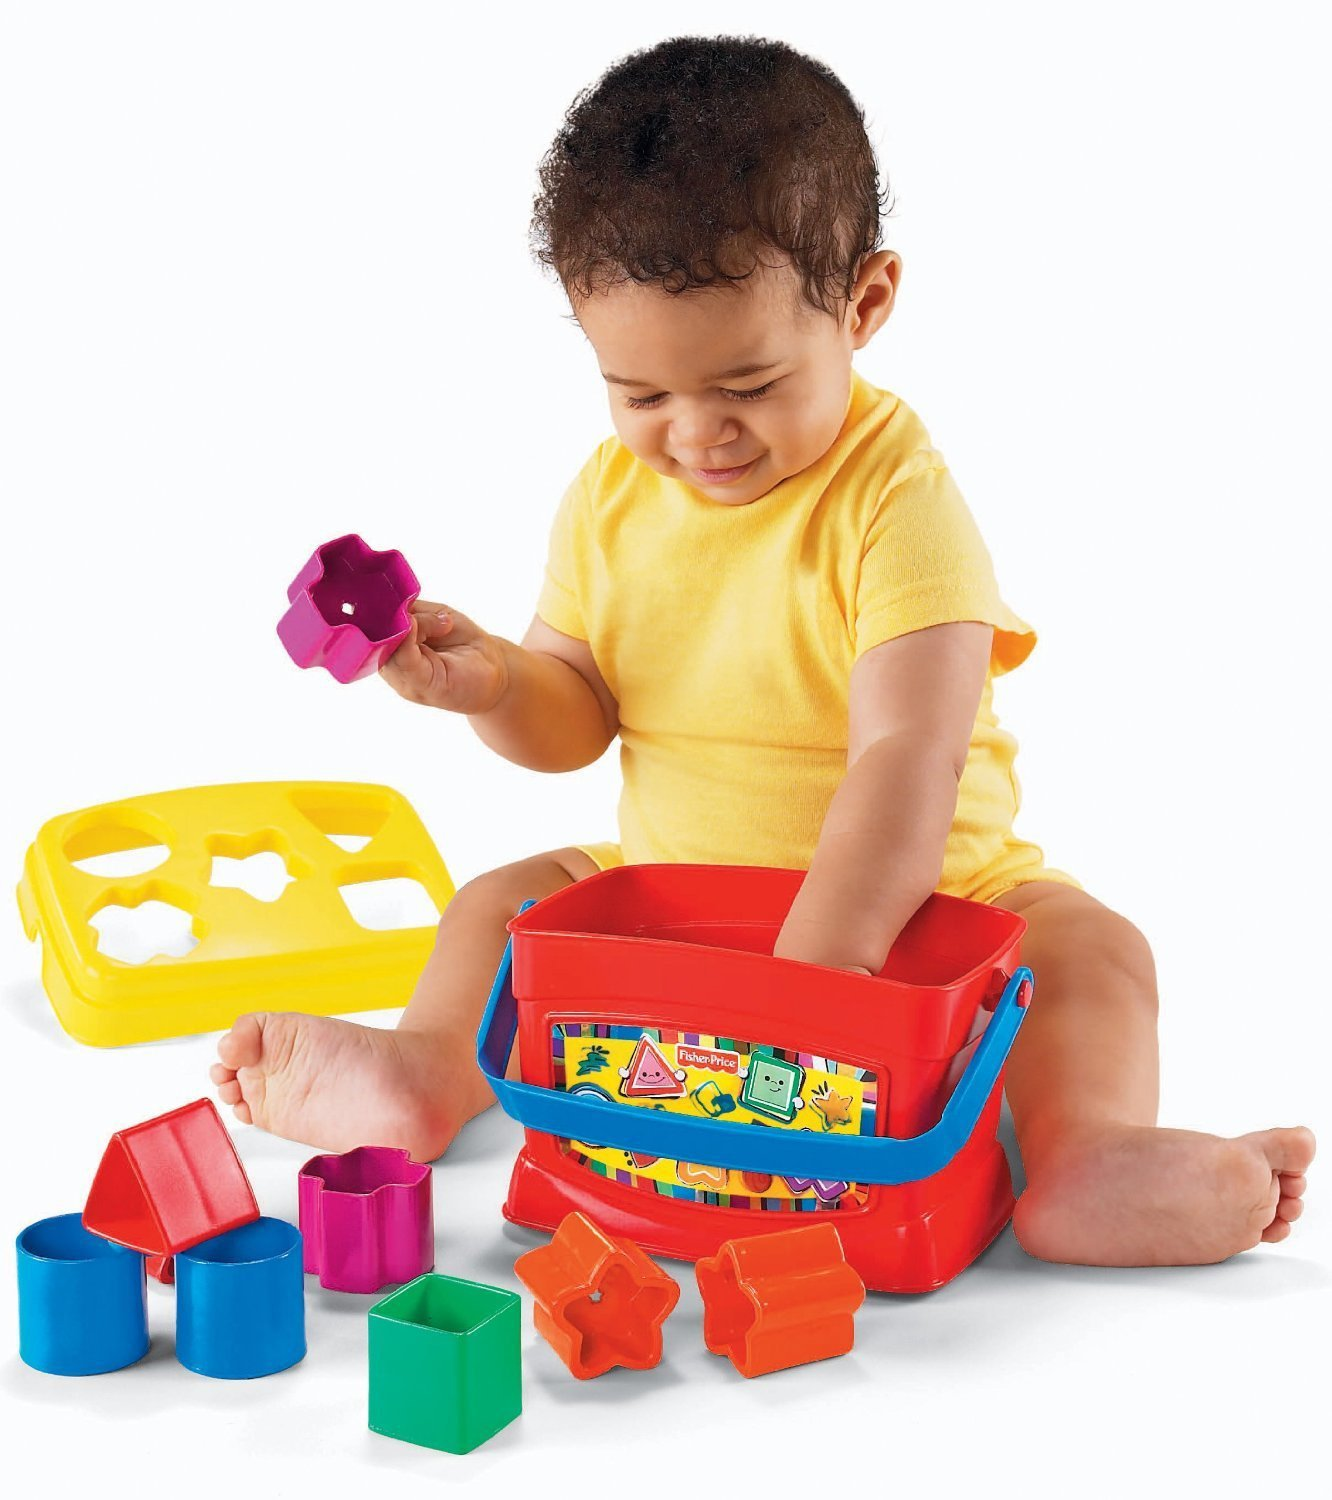 Best Toys For 12 Month Old : Best age appropriate toys for to month olds